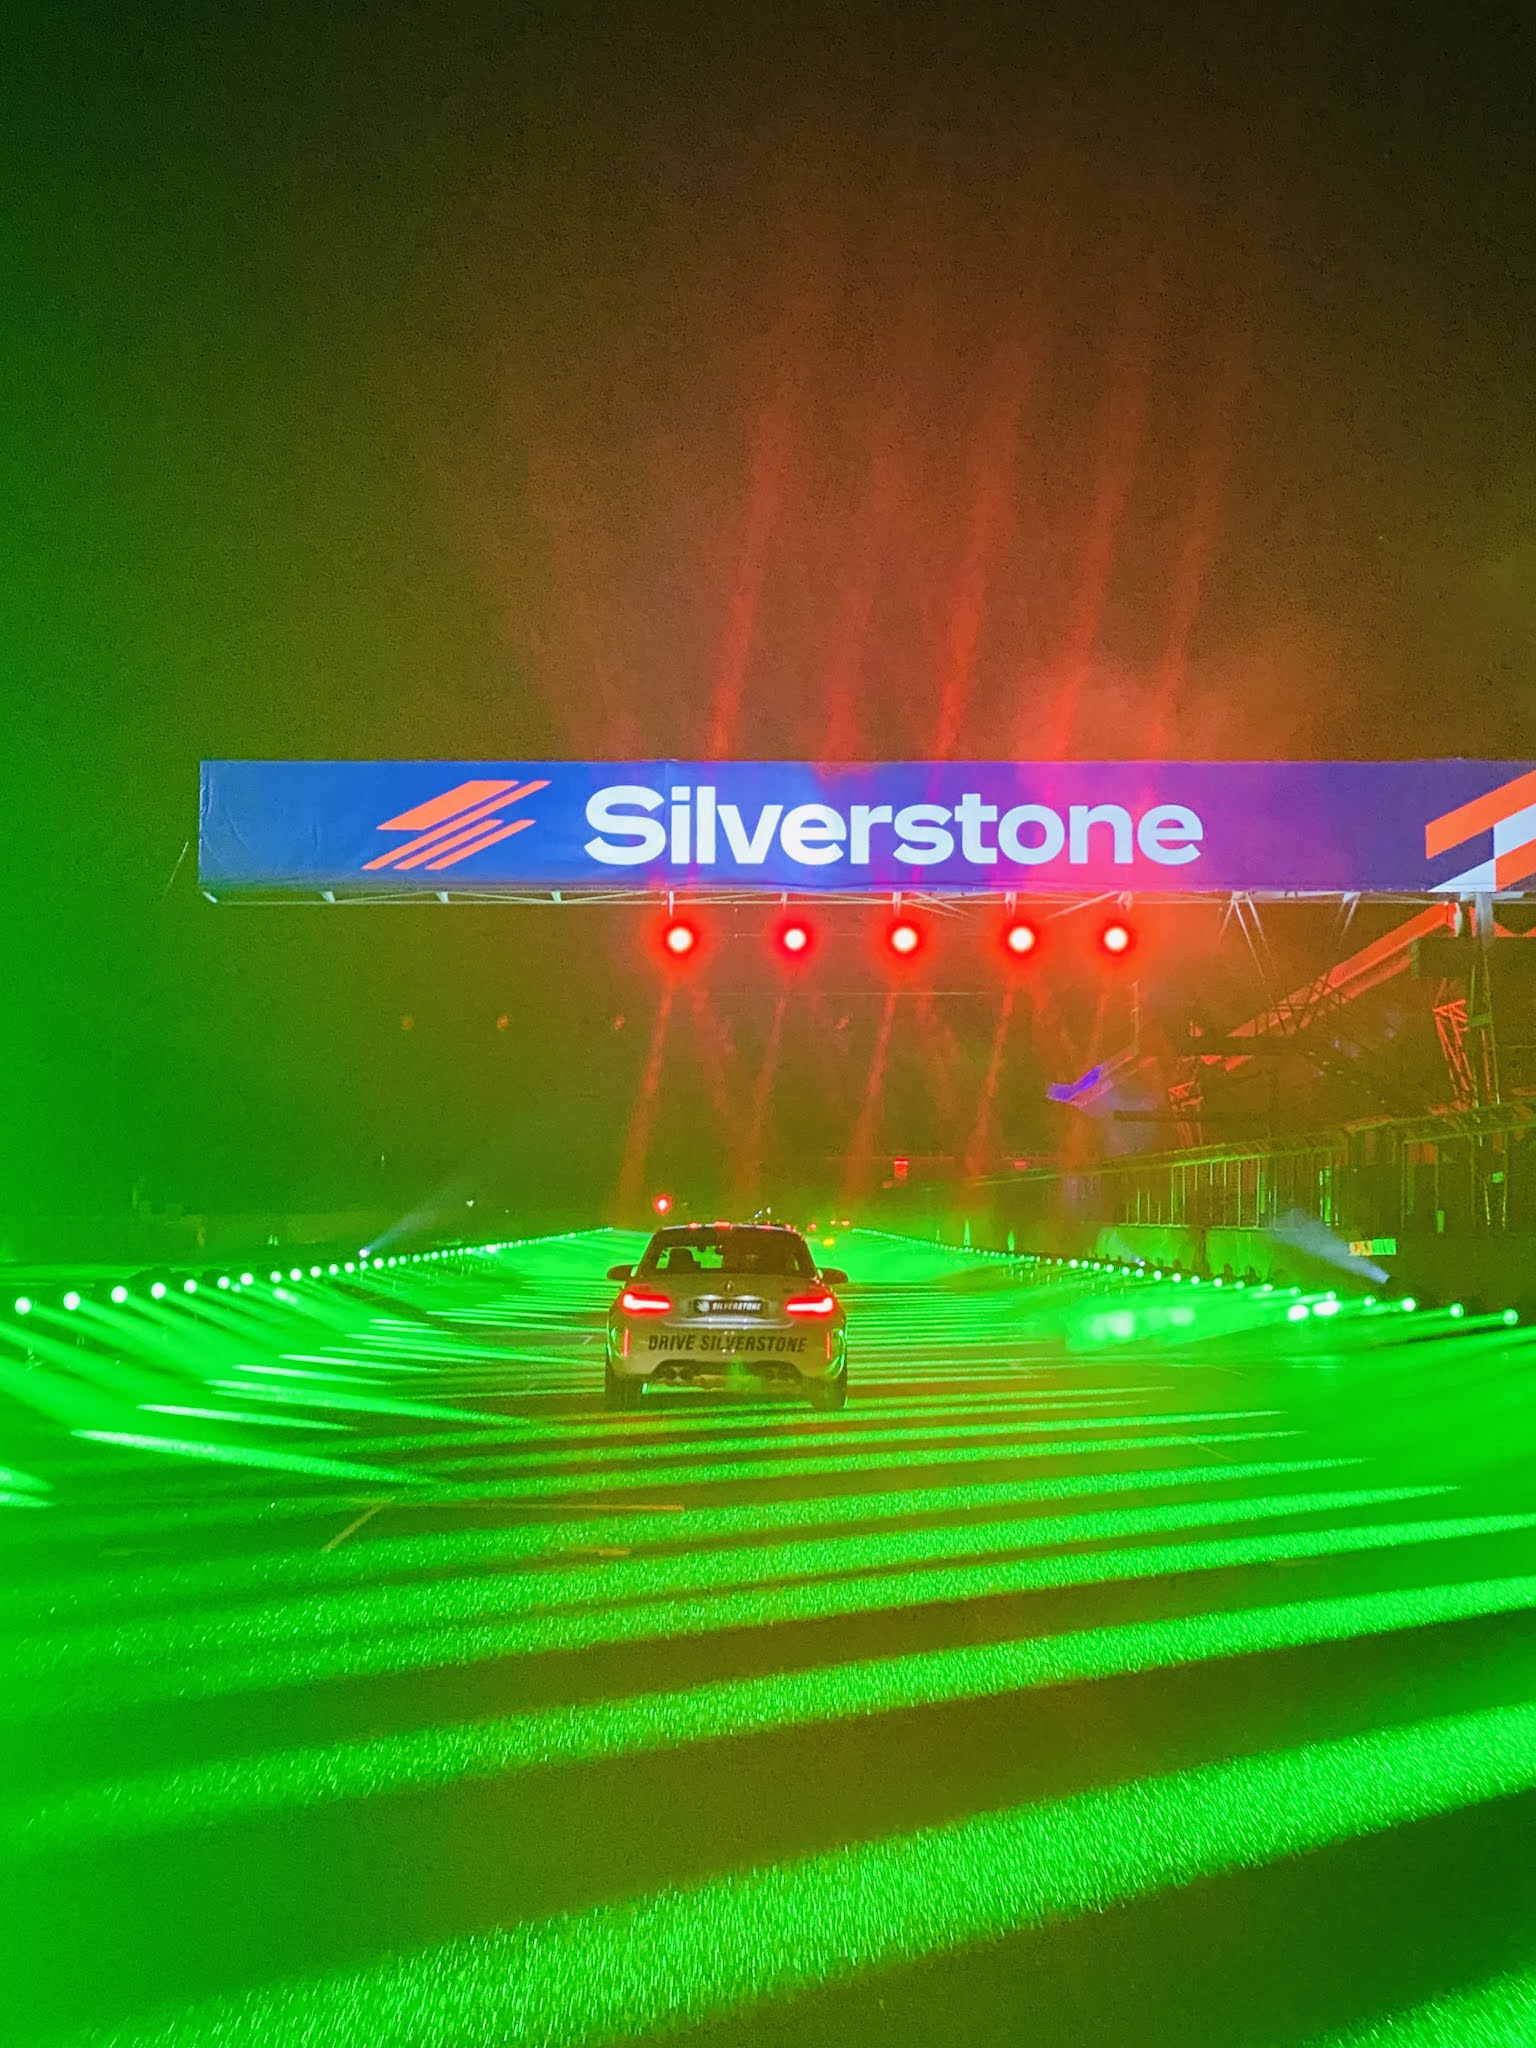 Lap Land Silverstone review pacer car and lasers lights